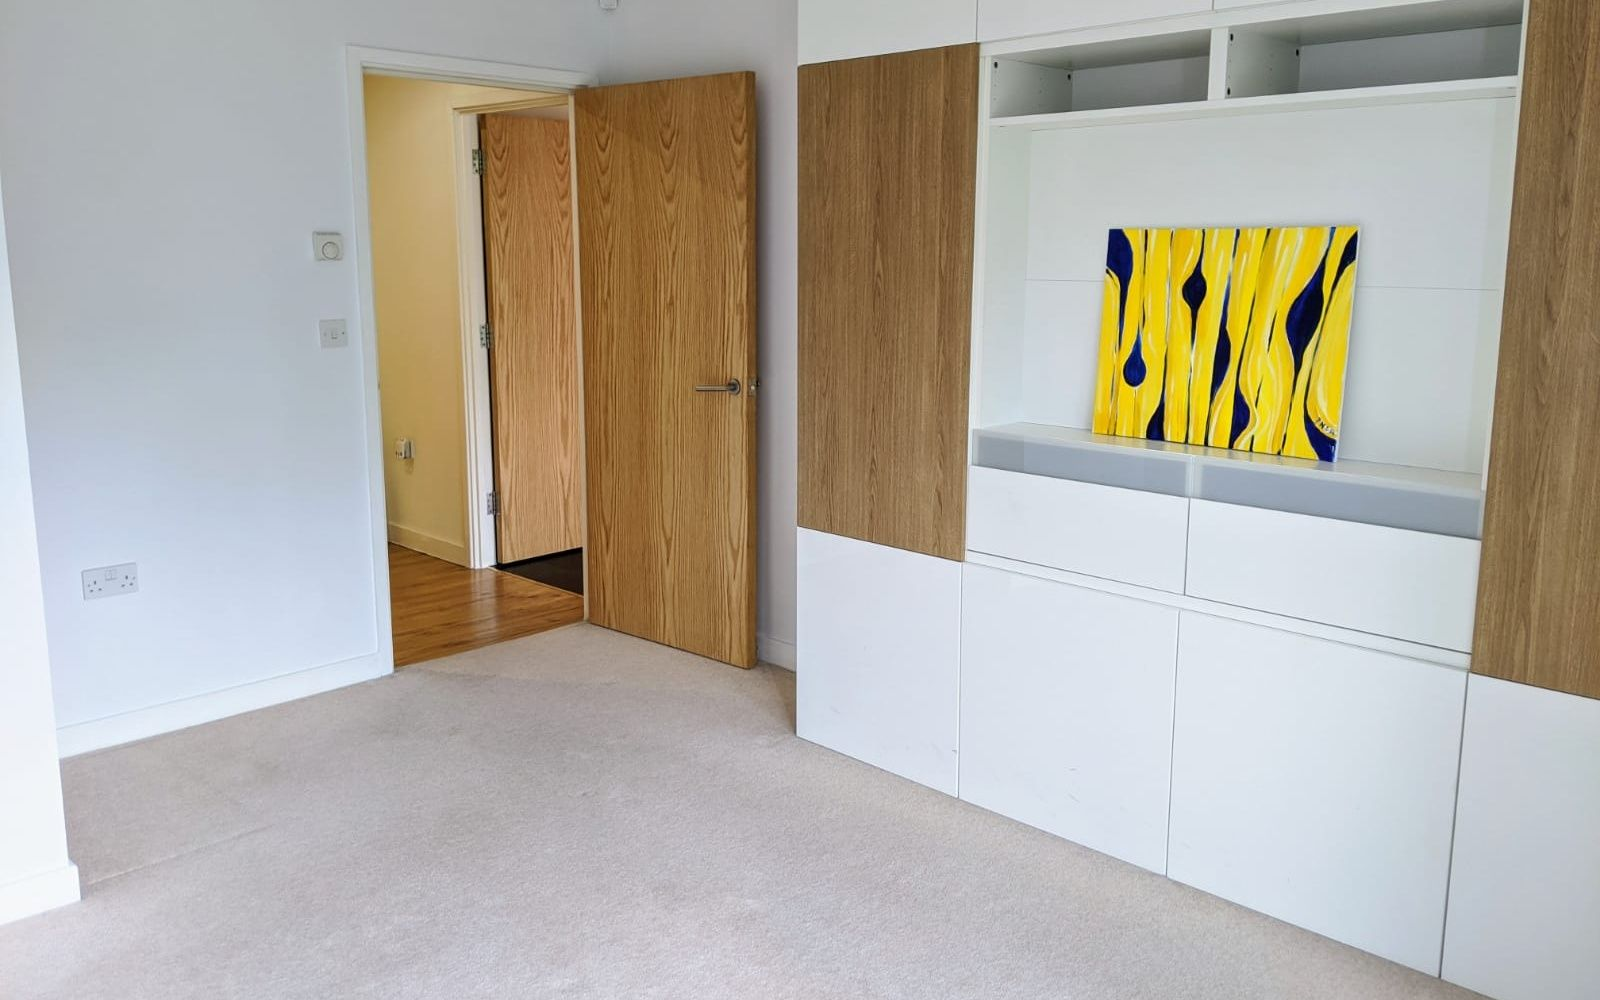 1 bedroom apartment Sale Agreed in Sevenoaks - Photograph 8